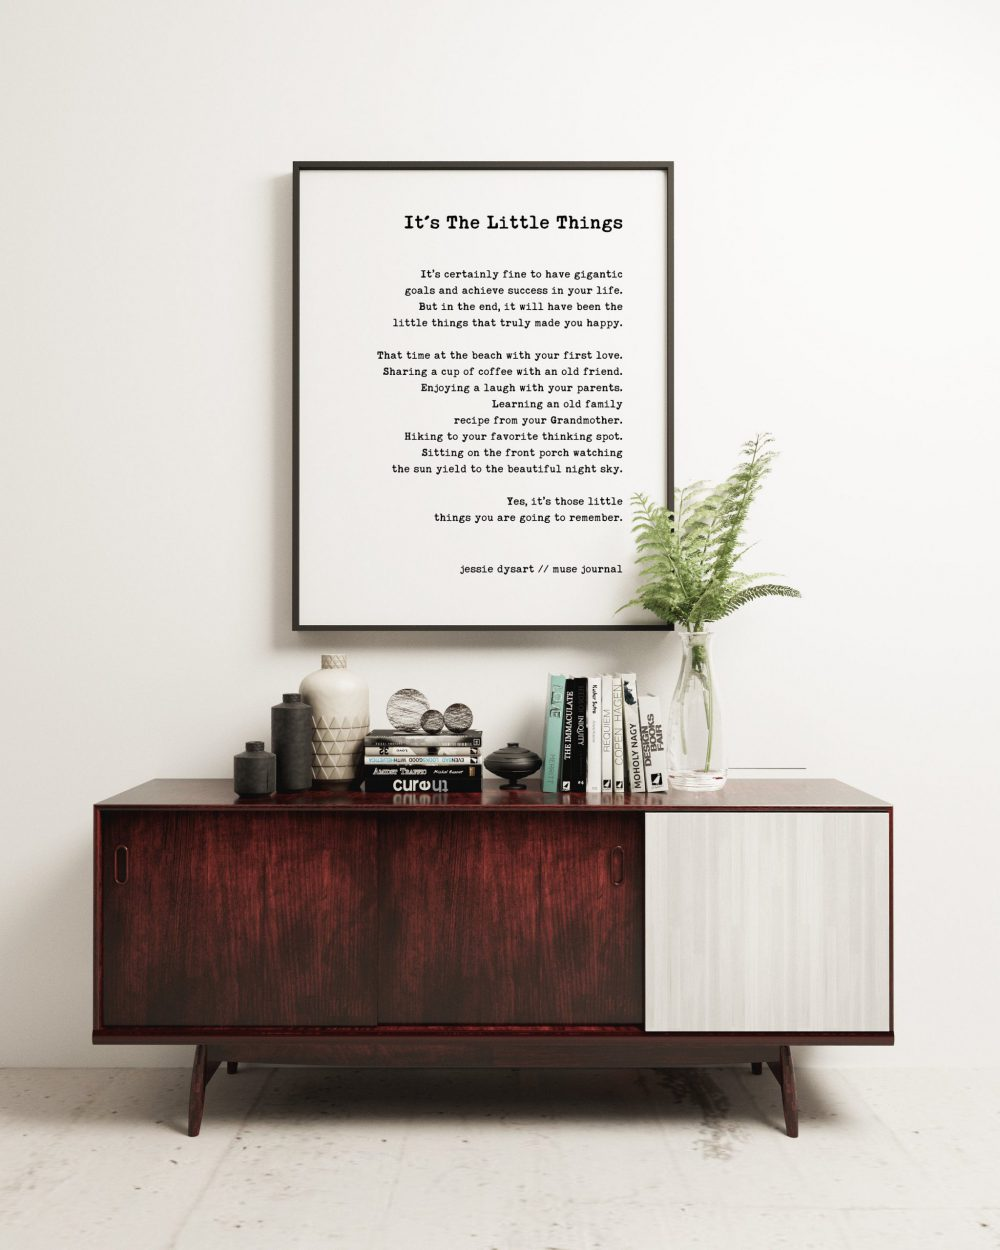 It's The Little Things Typography Print | Life Quotes | Jessie Dysart Muse Journal | Home Wall Decor | Wedding Poem | Minimalist Decor